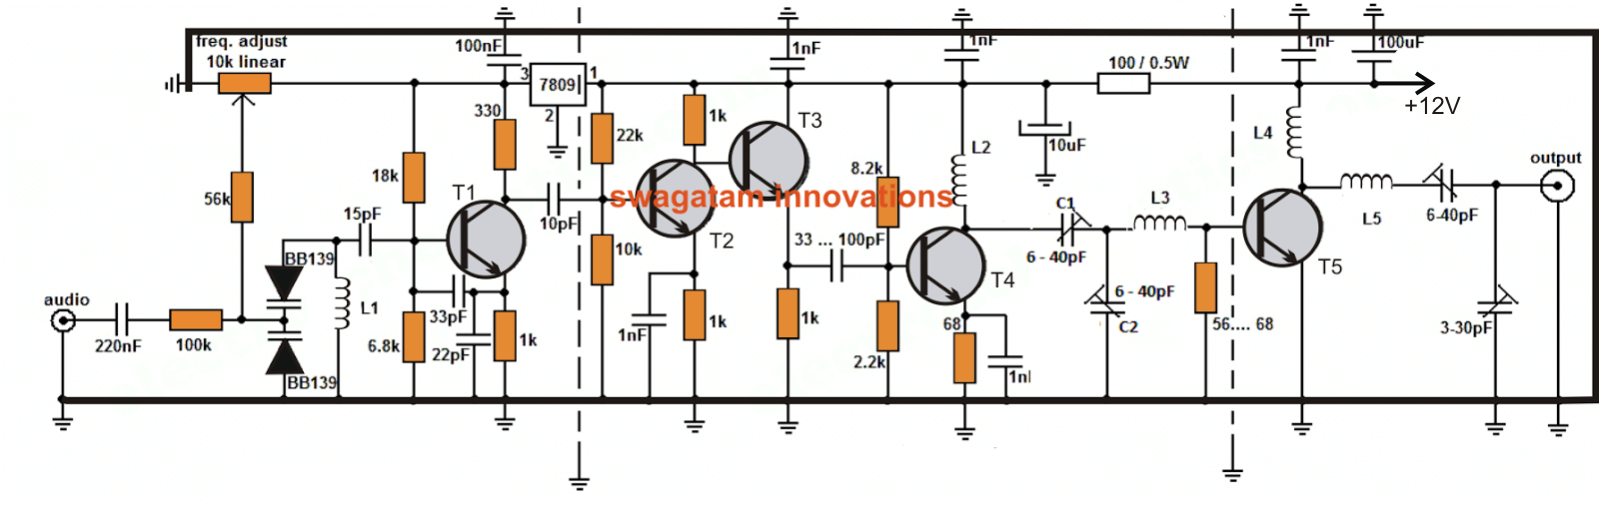 long range transmitter circuit 2 to 5 km range electronic long range transmitter circuit 2 to 5 km range